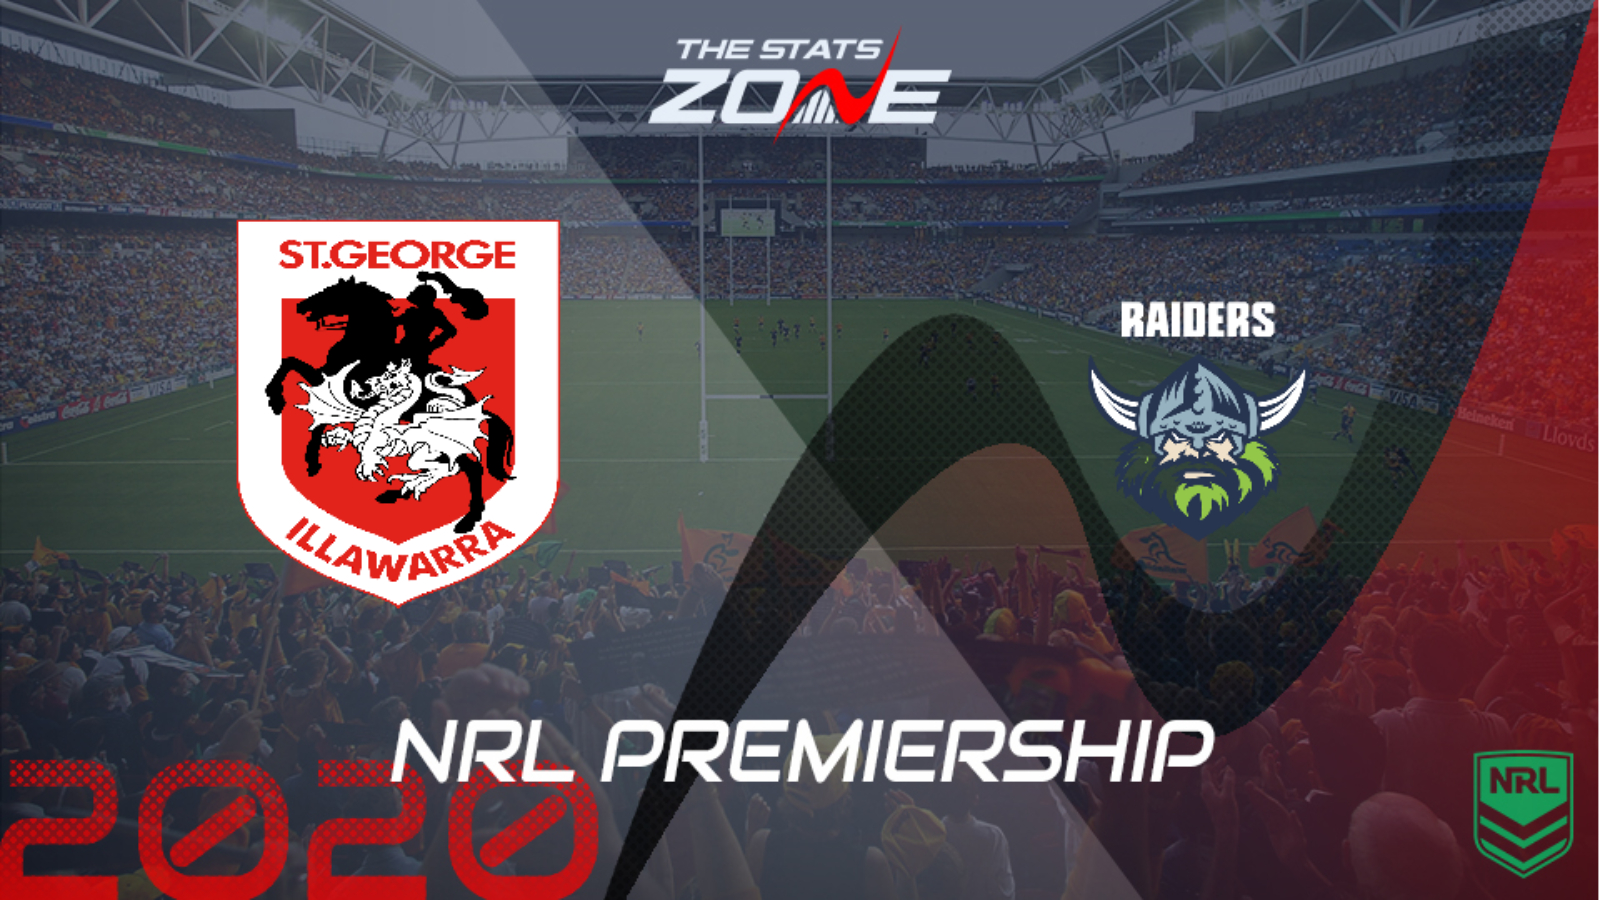 2020 Nrl St George Illawarra Dragons Vs Canberra Raiders Preview Prediction The Stats Zone